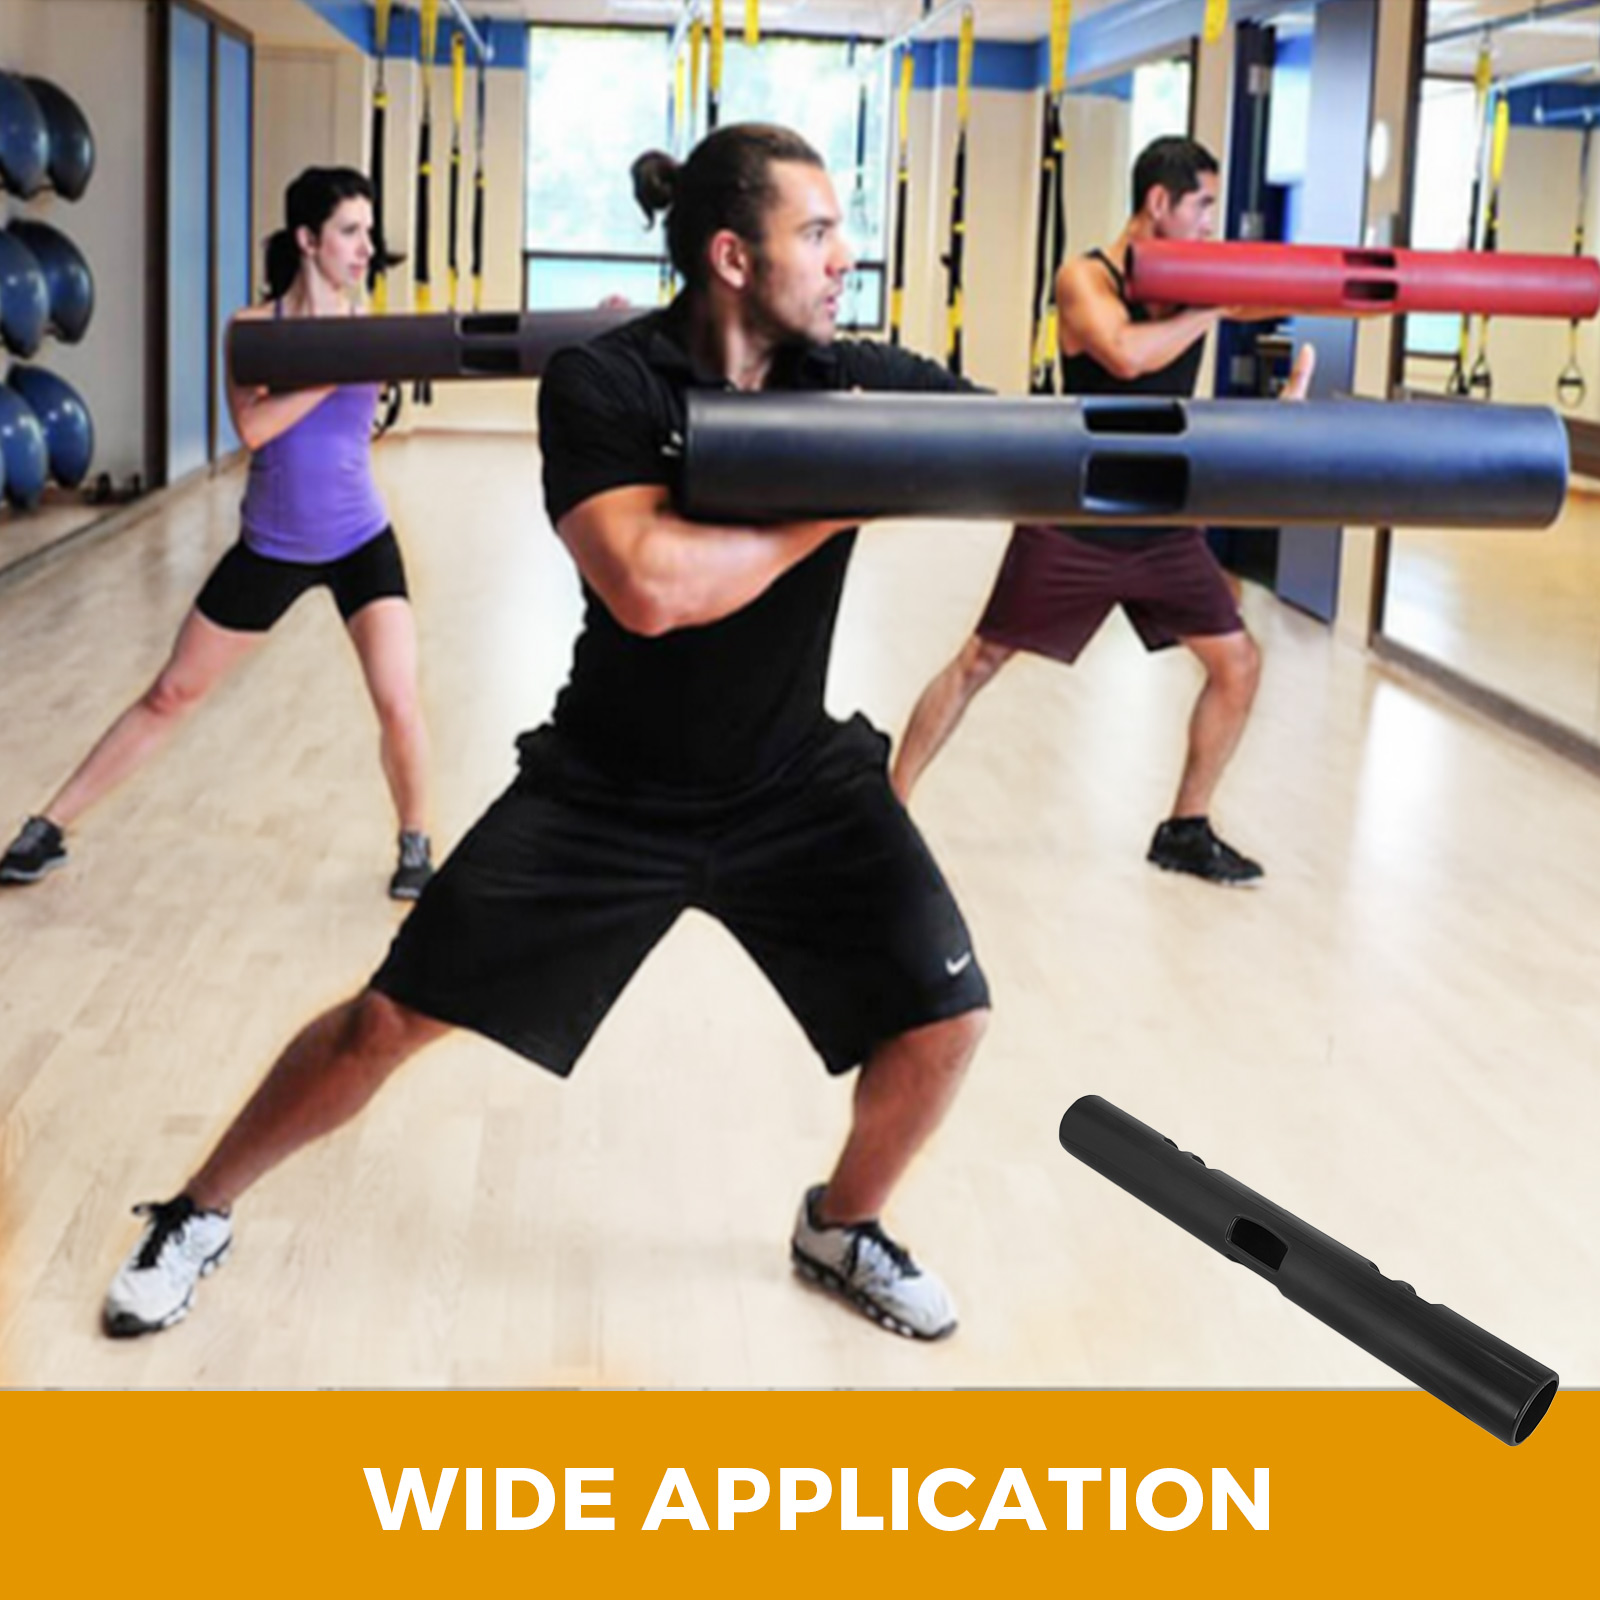 Vipr-Fitpro-Fitness-Tube-Loaded-Movement-Training-weightlifting-4-6-8-10-12-Kg thumbnail 307